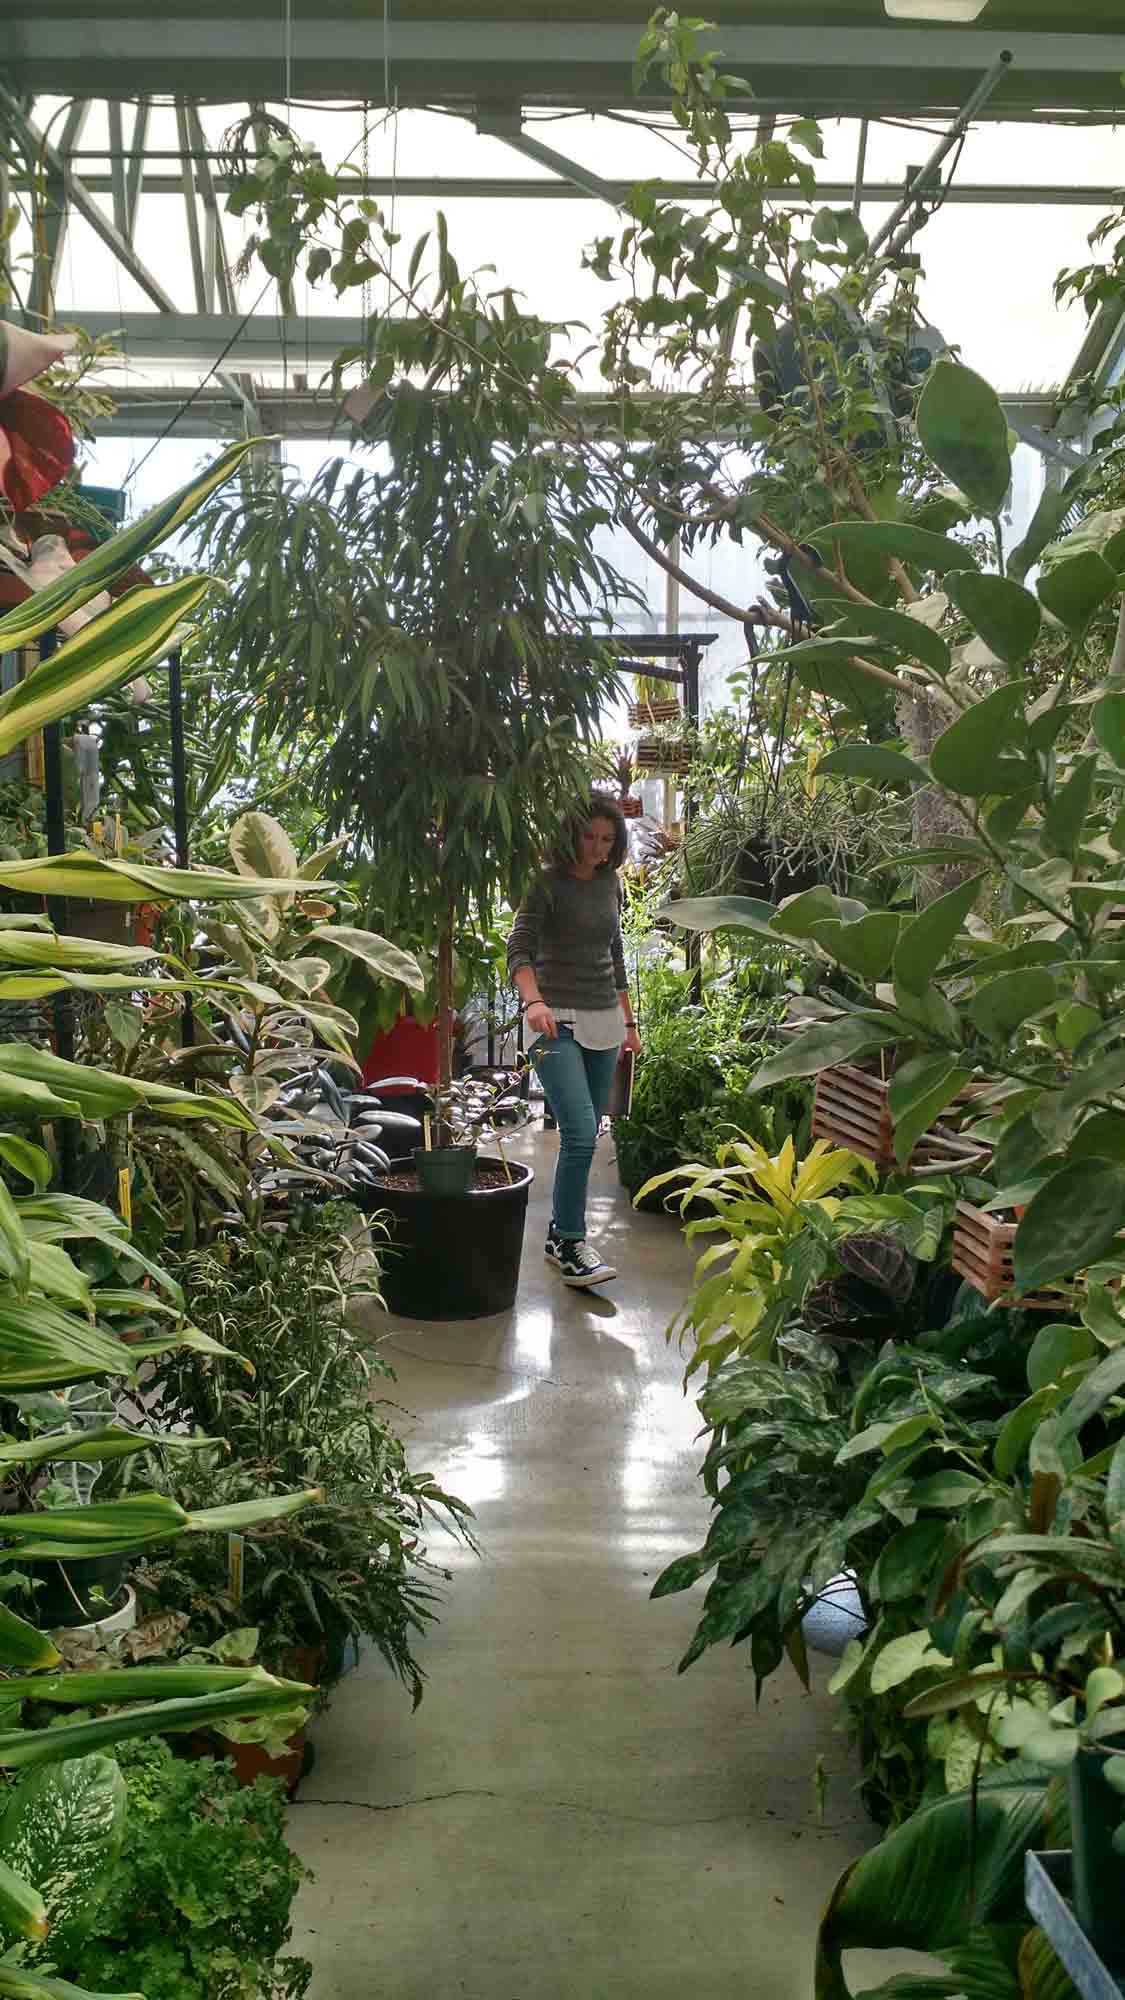 biology greenhouse provides learning opportunities for students and rh theappalachianonline com